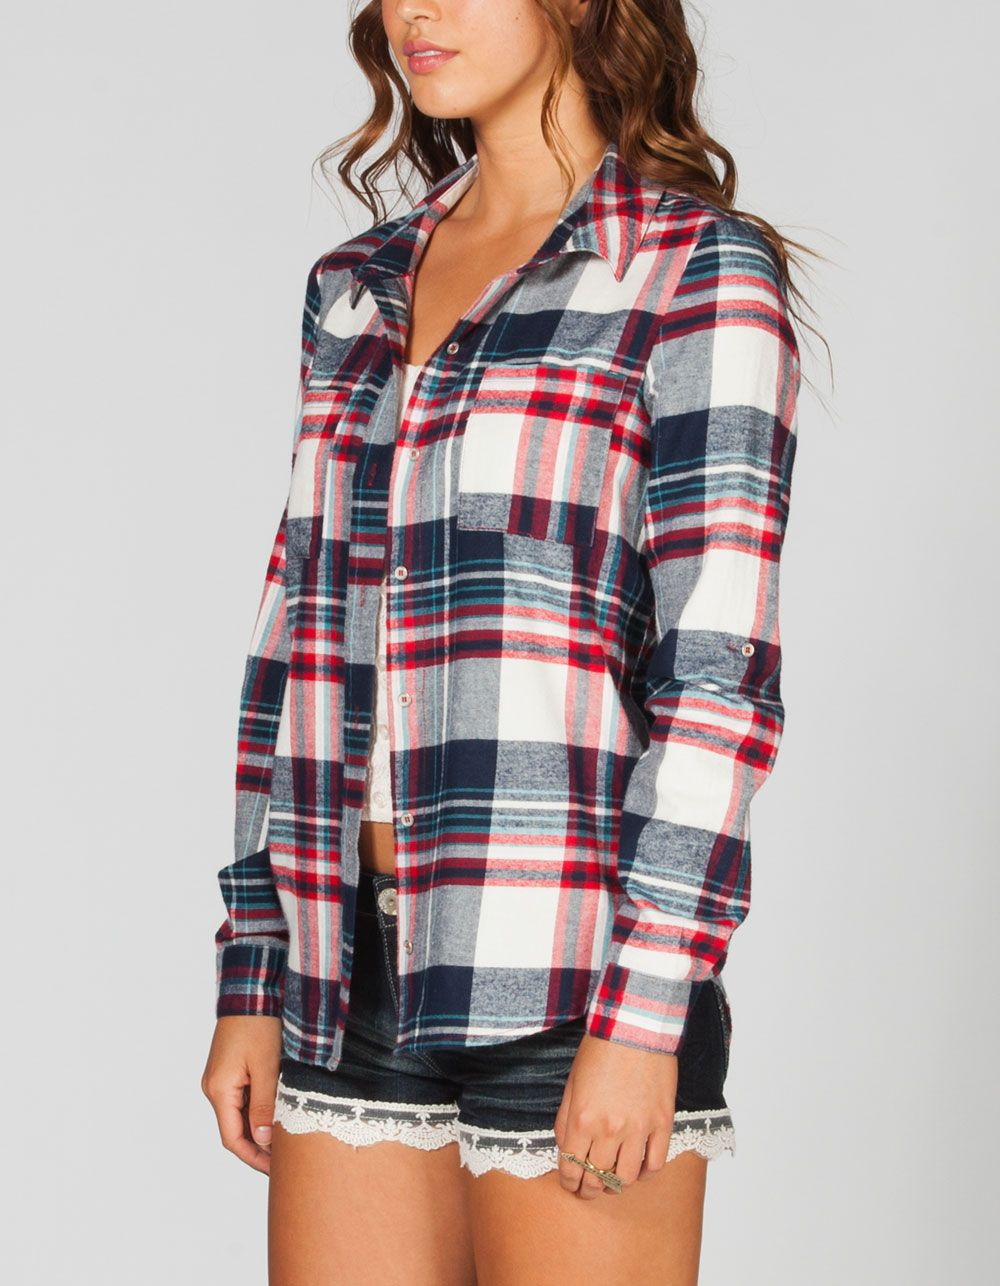 Flannel shirt outfit women  FULL TILT Womens Washed Flannel Shirt And I have those shorts